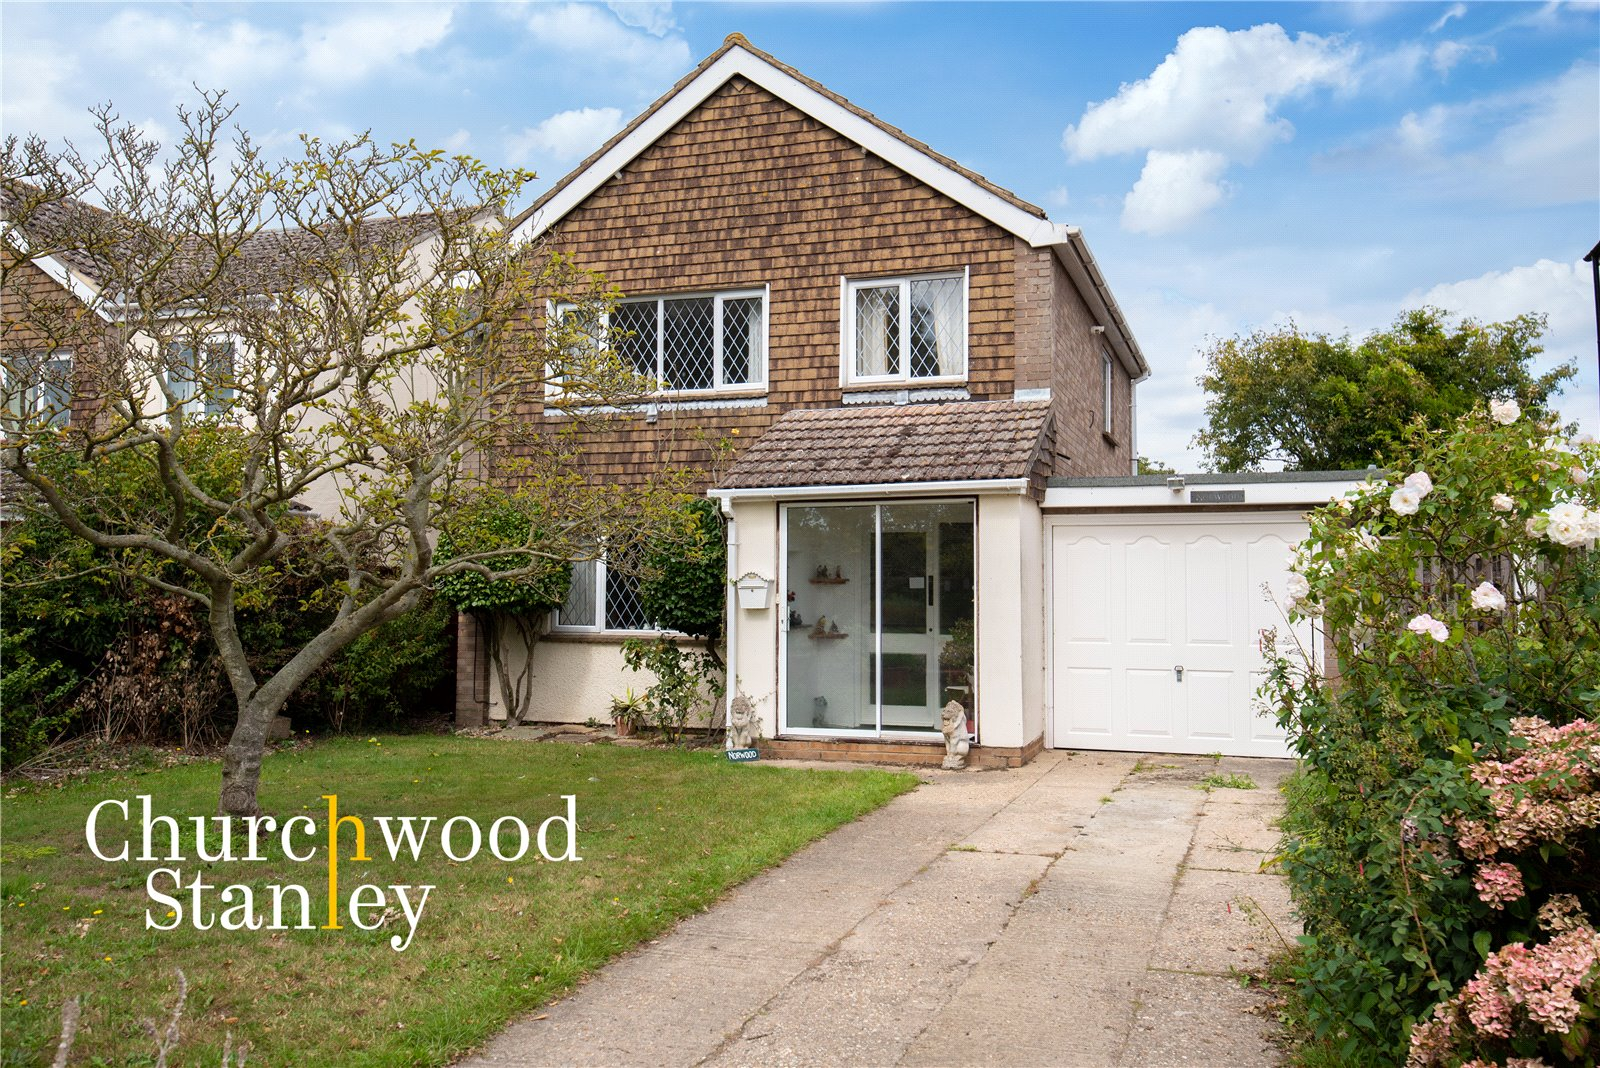 3 bed house for sale in Mill Lane, Bradfield, Manningtree, CO11